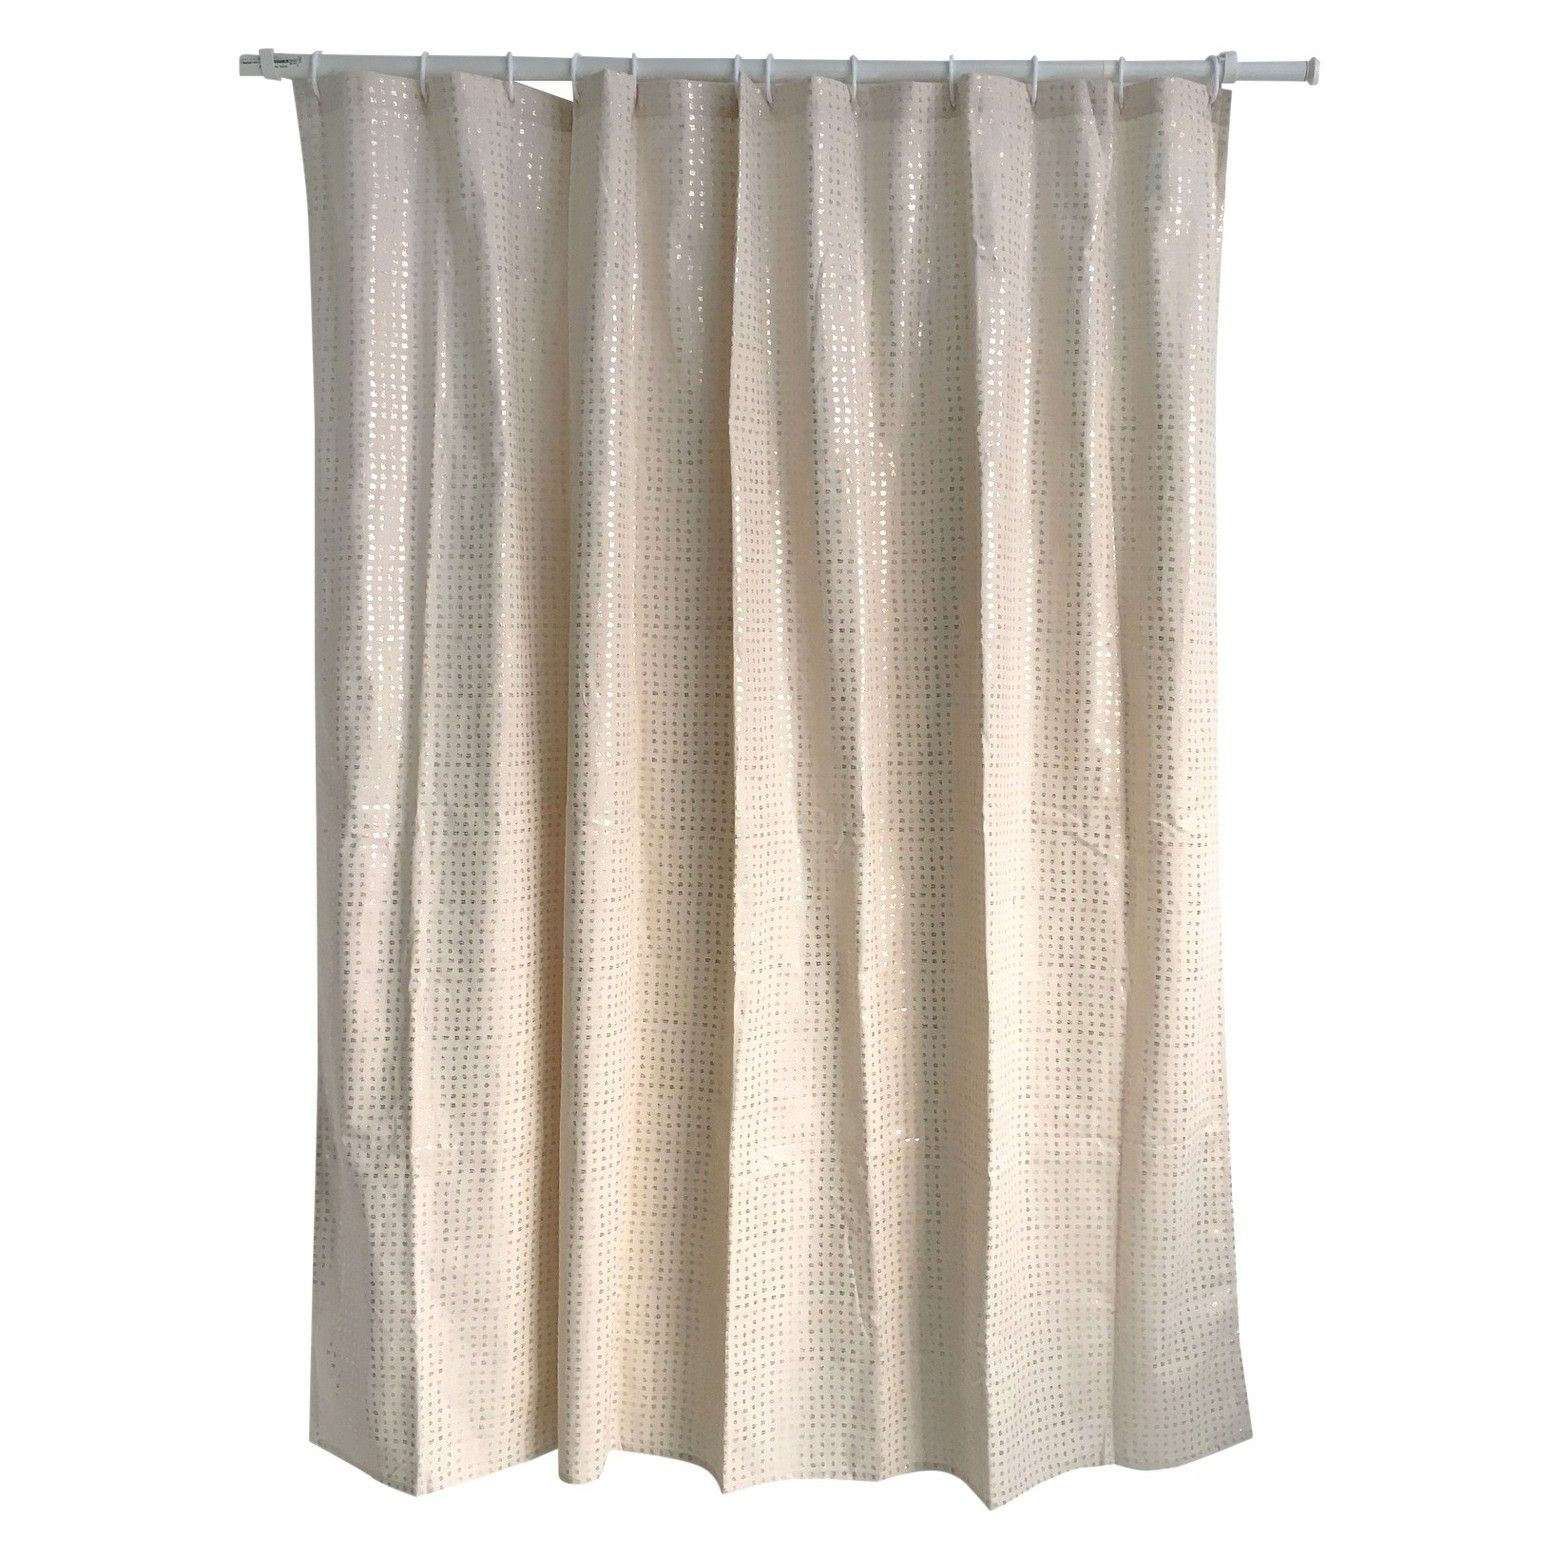 Let Your Bathroom Shine By Hanging Up The Metallic Shower Curtain